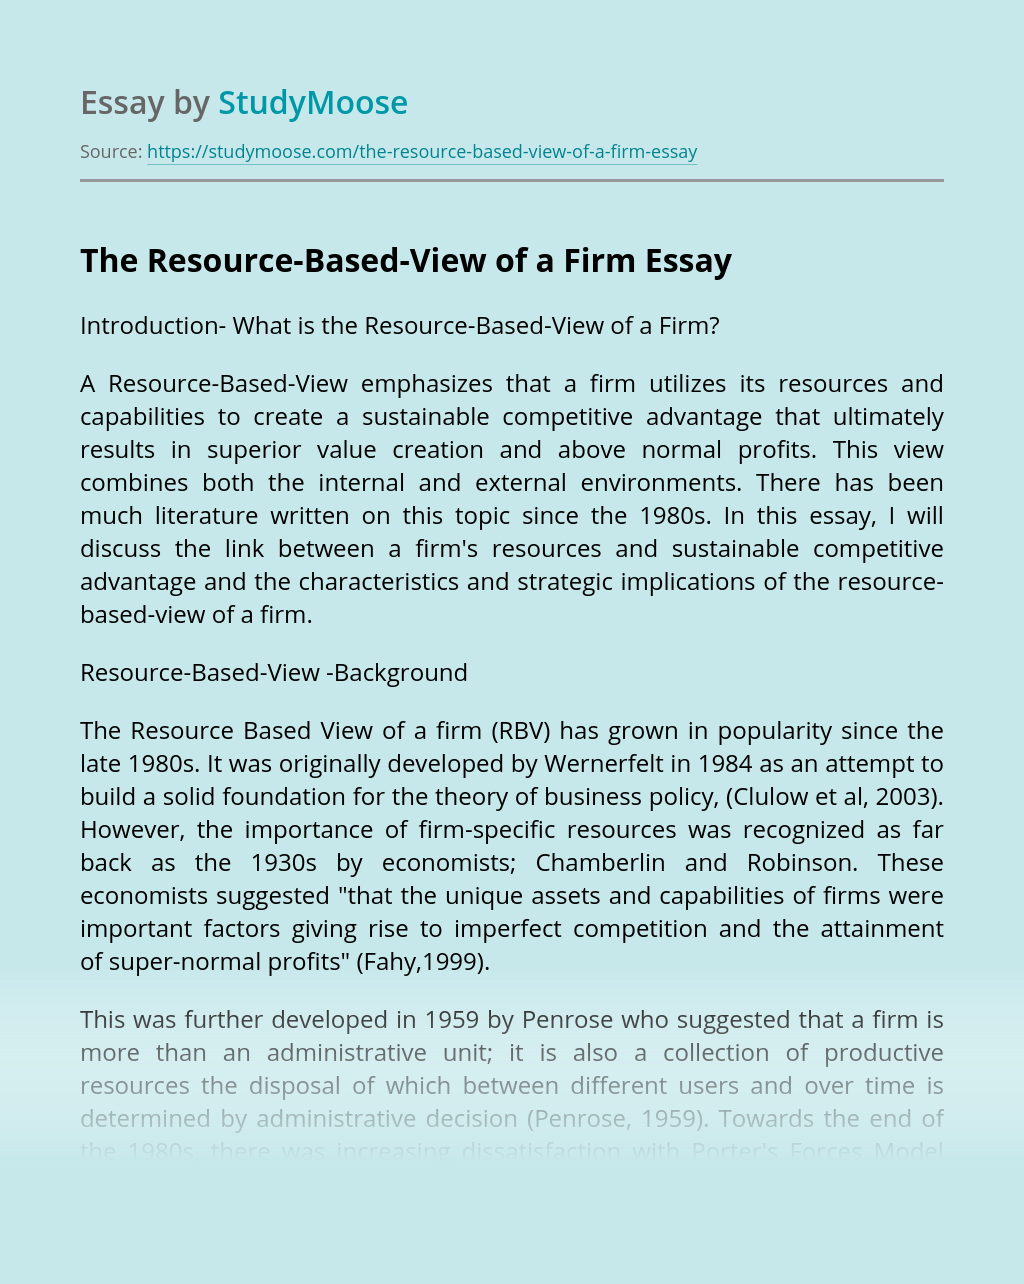 The Resource-Based-View of a Firm